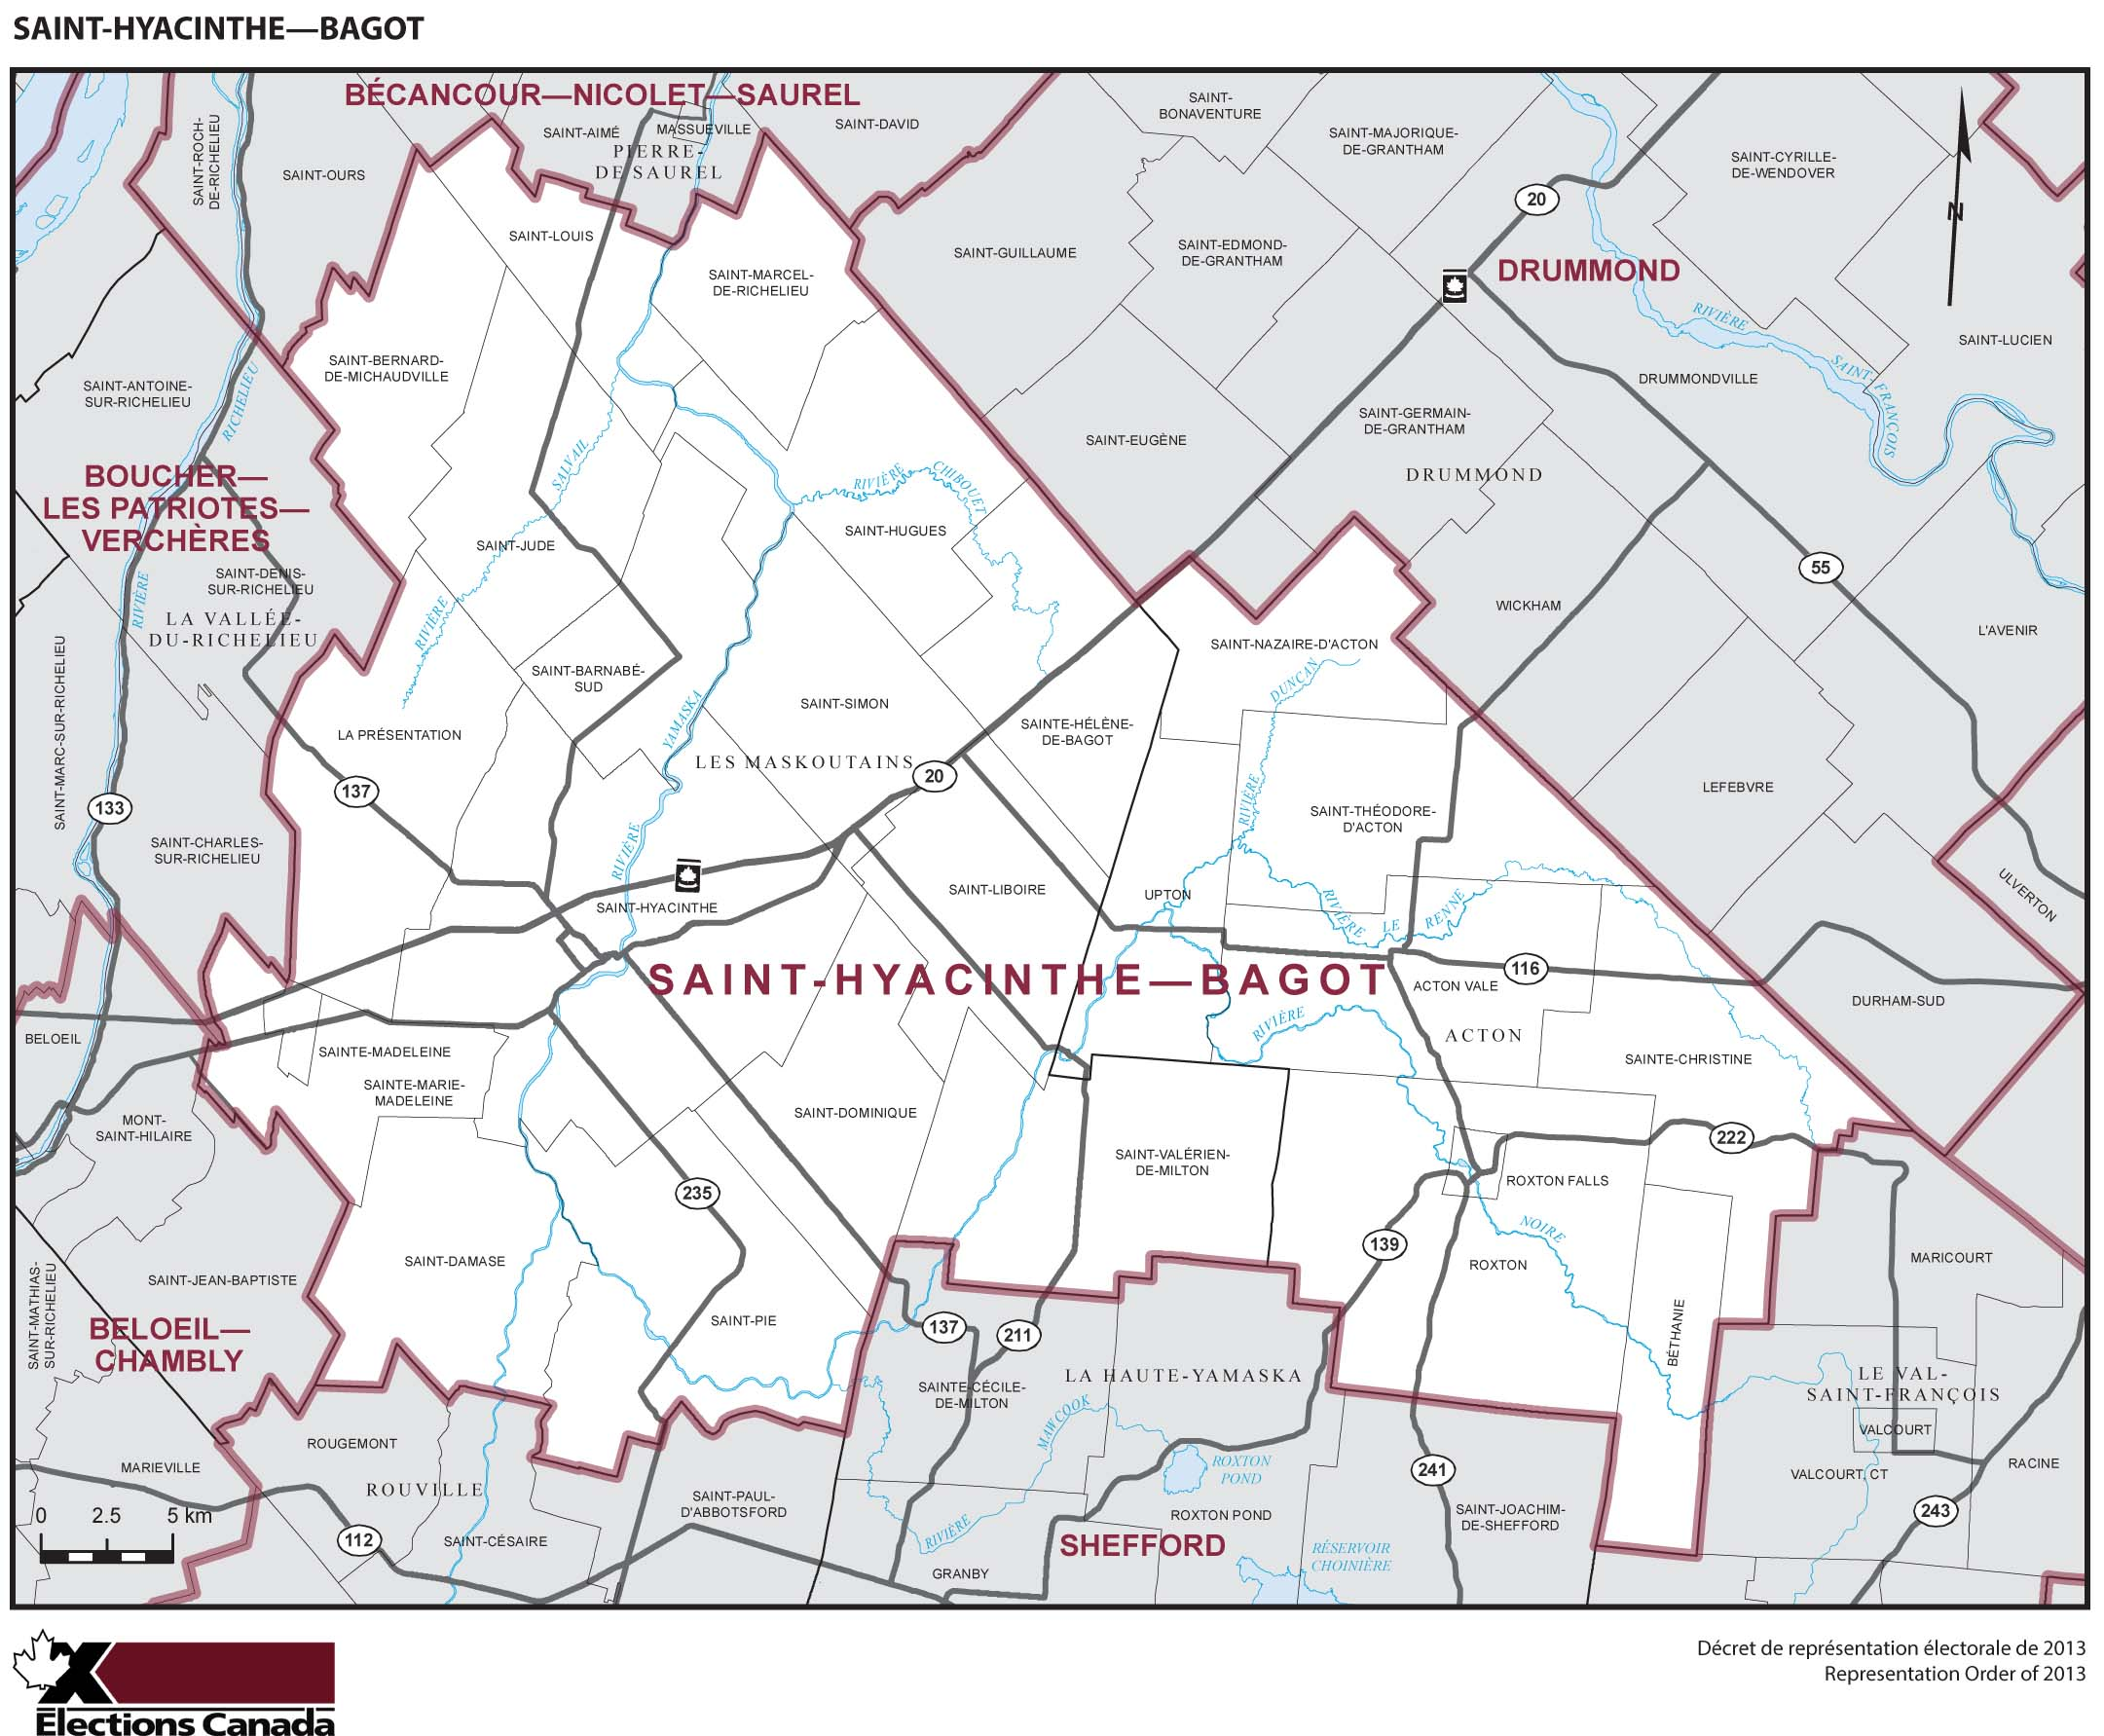 Map: Saint-Hyacinthe--Bagot, Federal electoral district, 2013 Representation Order (in white), Quebec